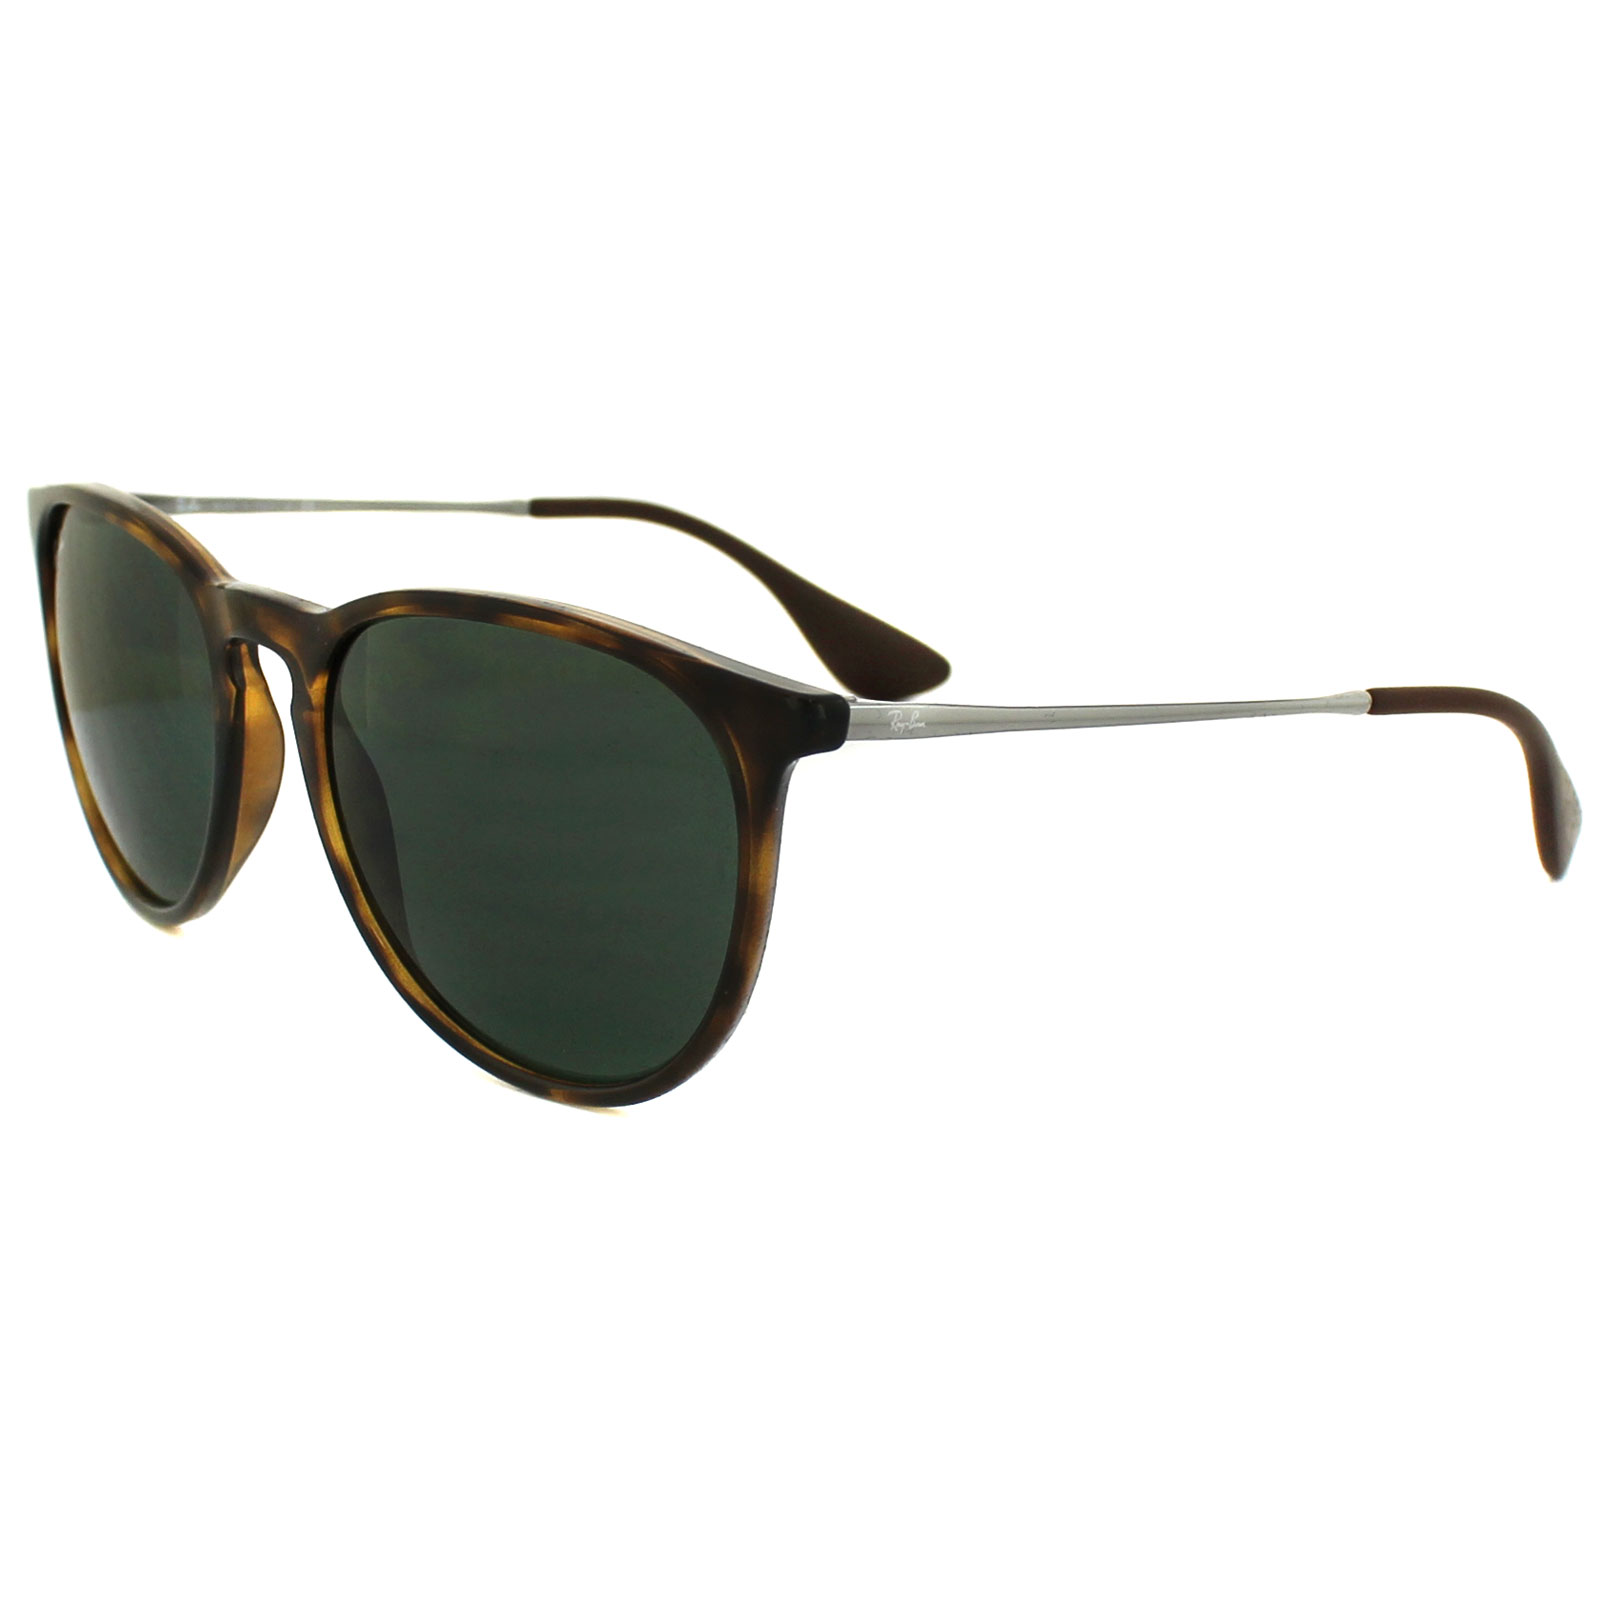 ray ban erika sunglasses cheap  ray ban erika 4171 sunglasses